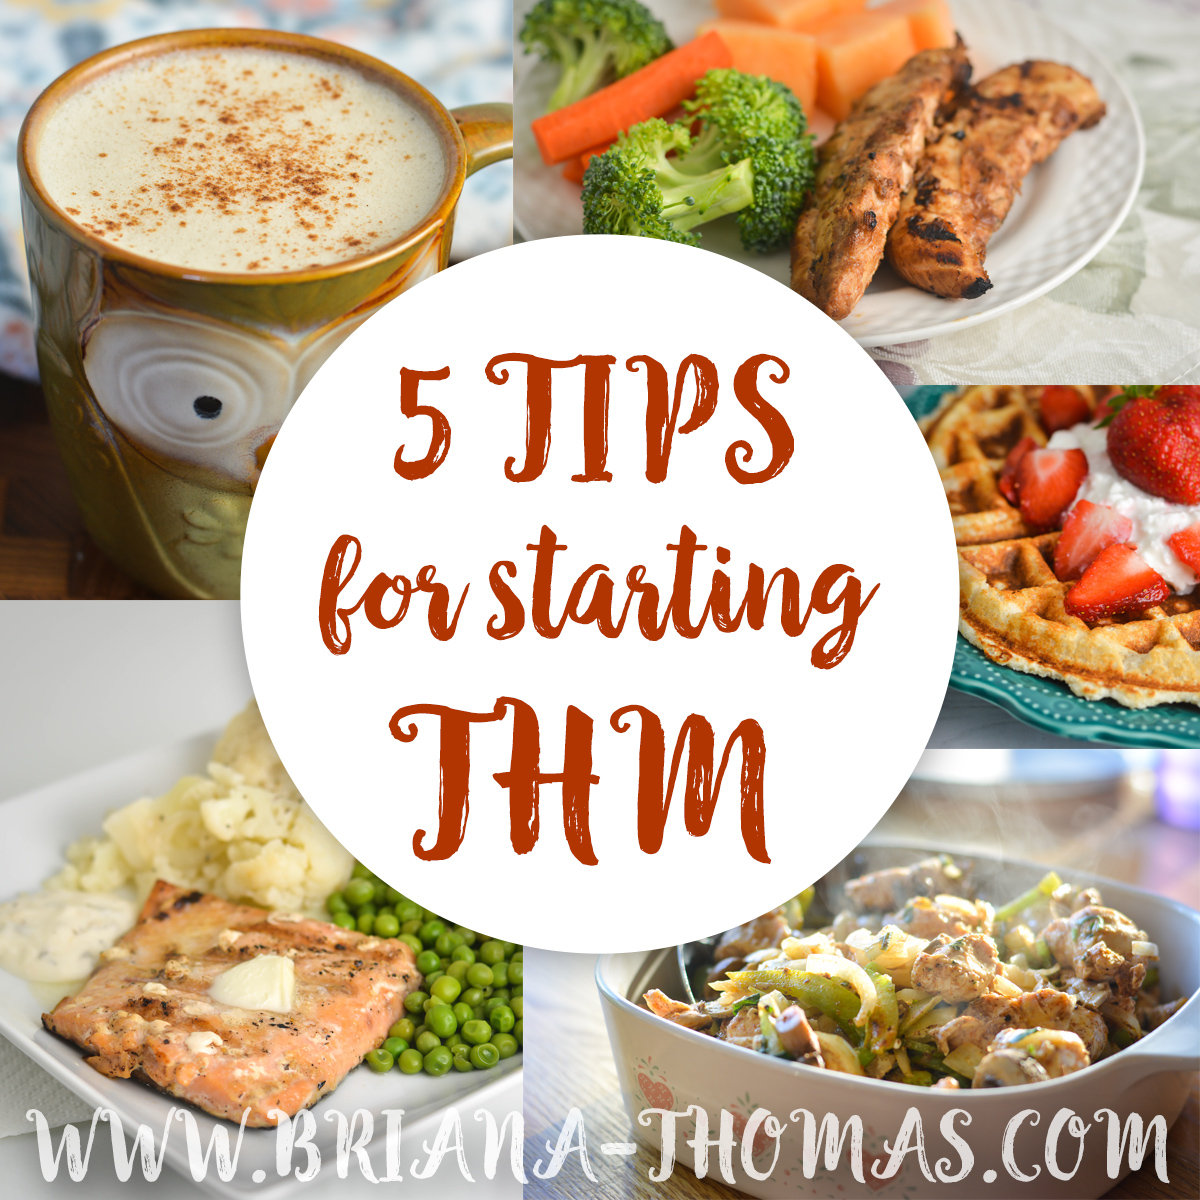 Here are 5 tips for starting THM - or maybe even restarting if you've already tried and became really overwhelmed before grasping the concepts!